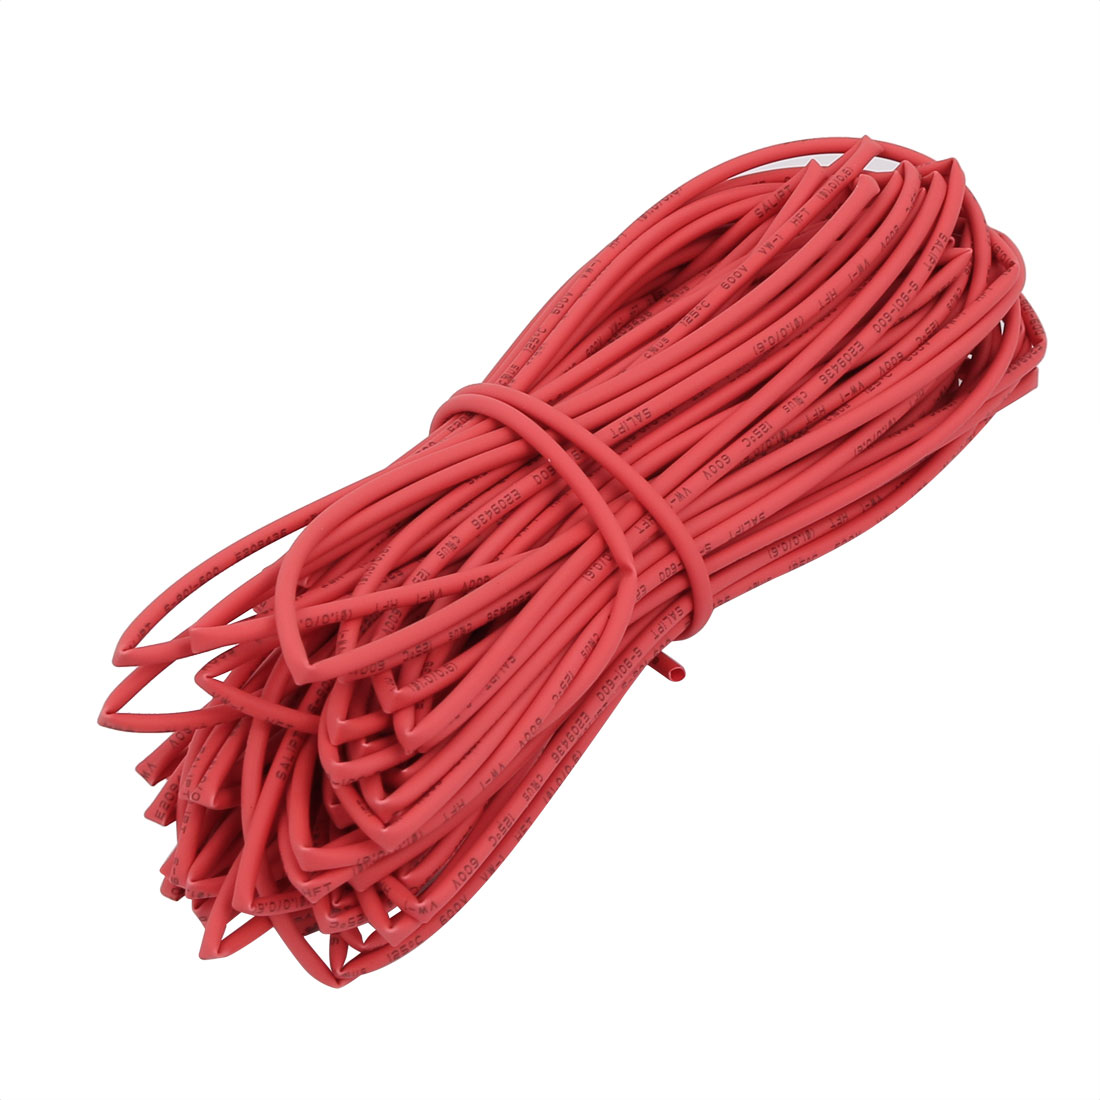 15M 0.04in Inner Dia Polyolefin Flame Retardant Tube Red for Wire Repairing